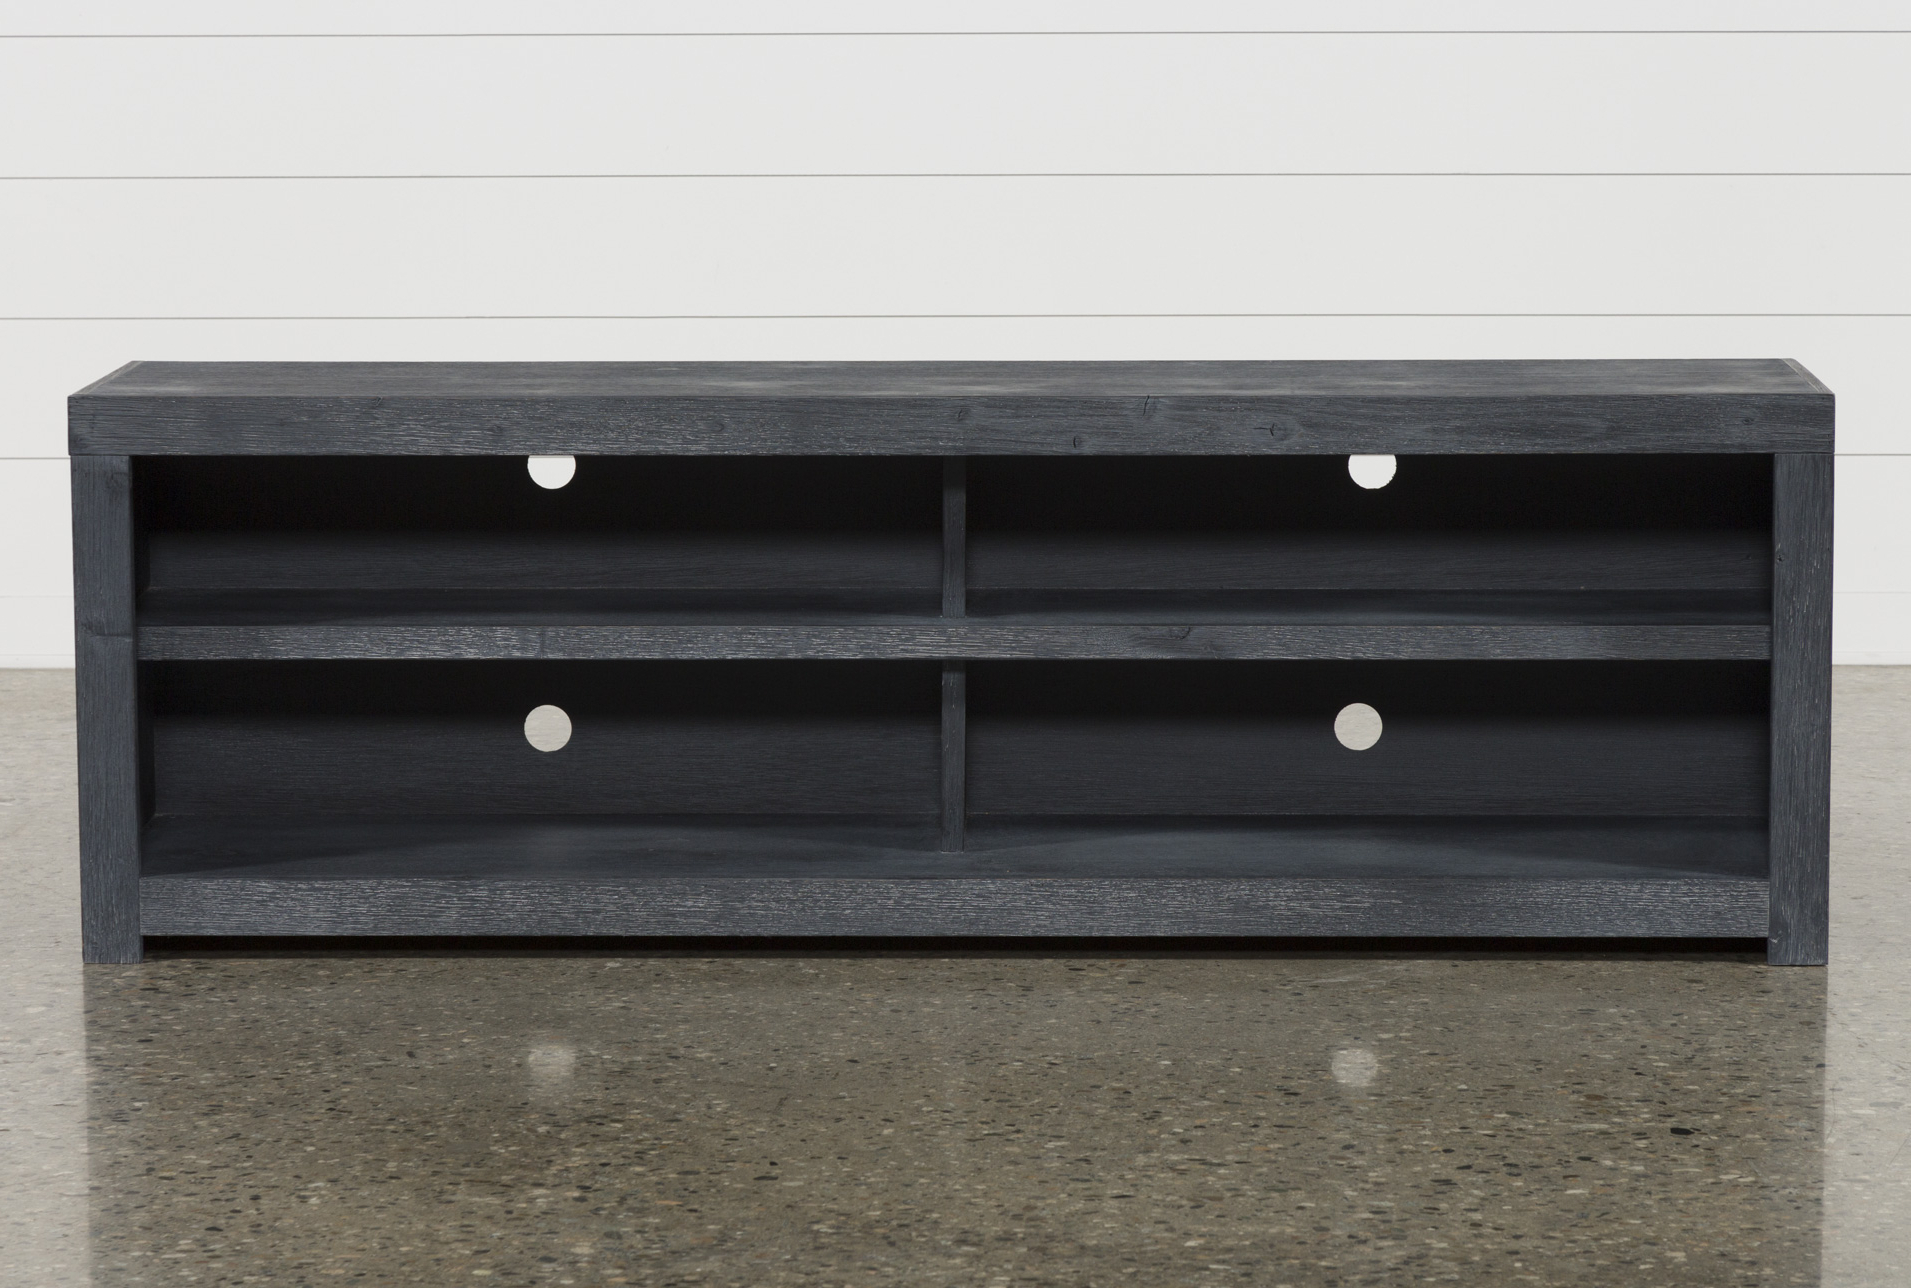 Kilian Black 74 Inch Tv Stand In 2018 | Products | Tvs, Black For Kilian Black 74 Inch Tv Stands (Gallery 1 of 20)